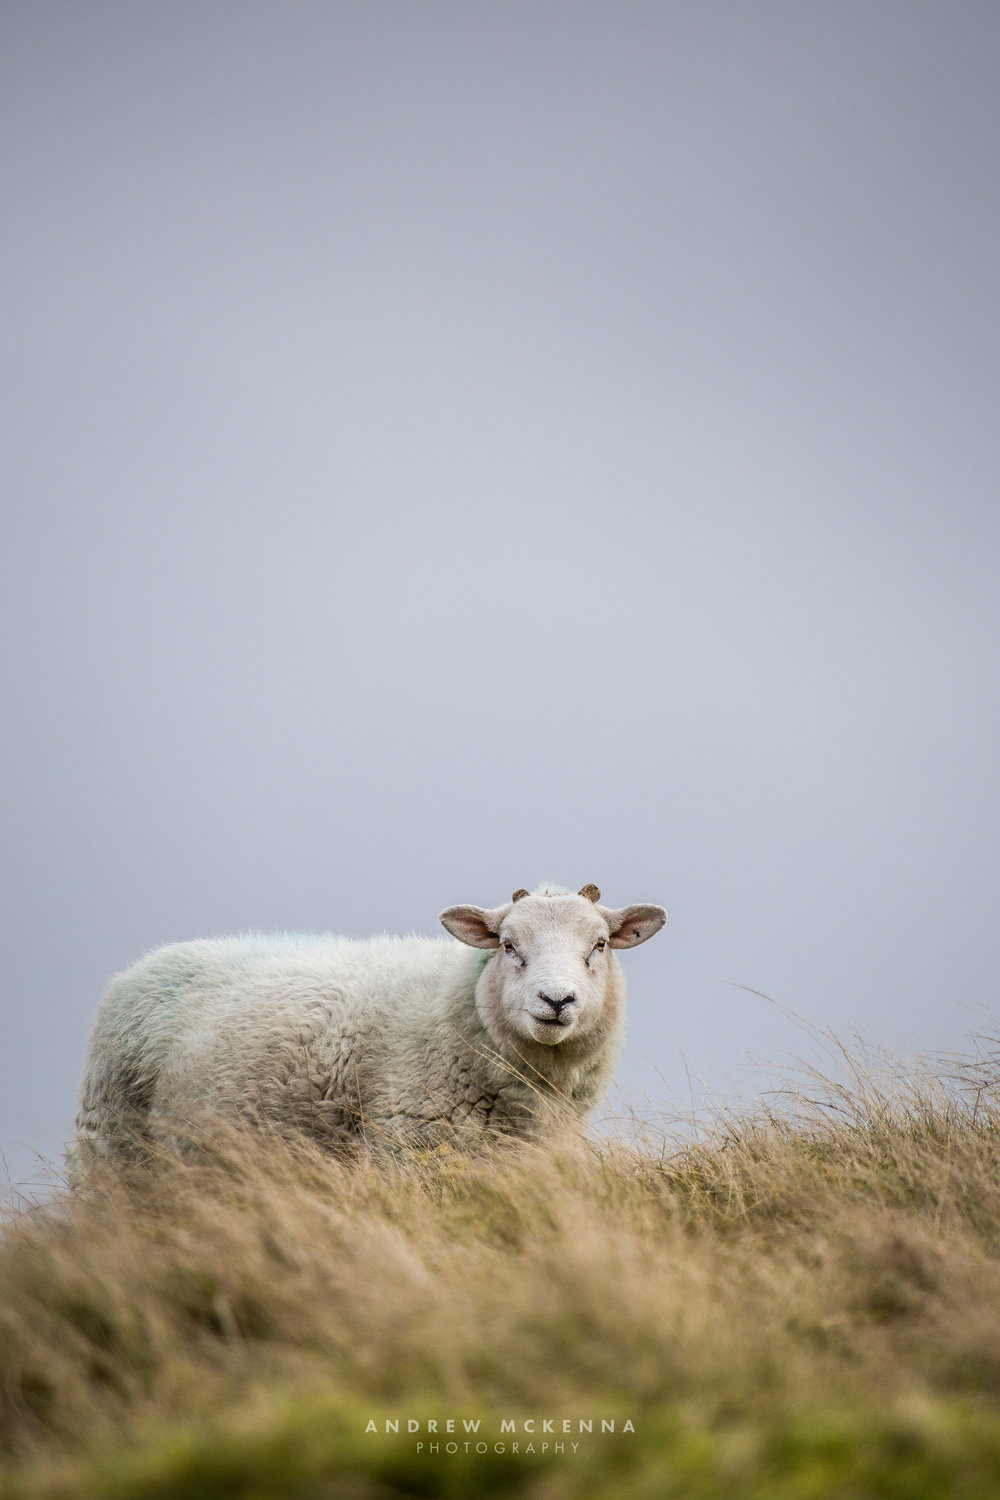 A free roaming sheep on Slieve Croob